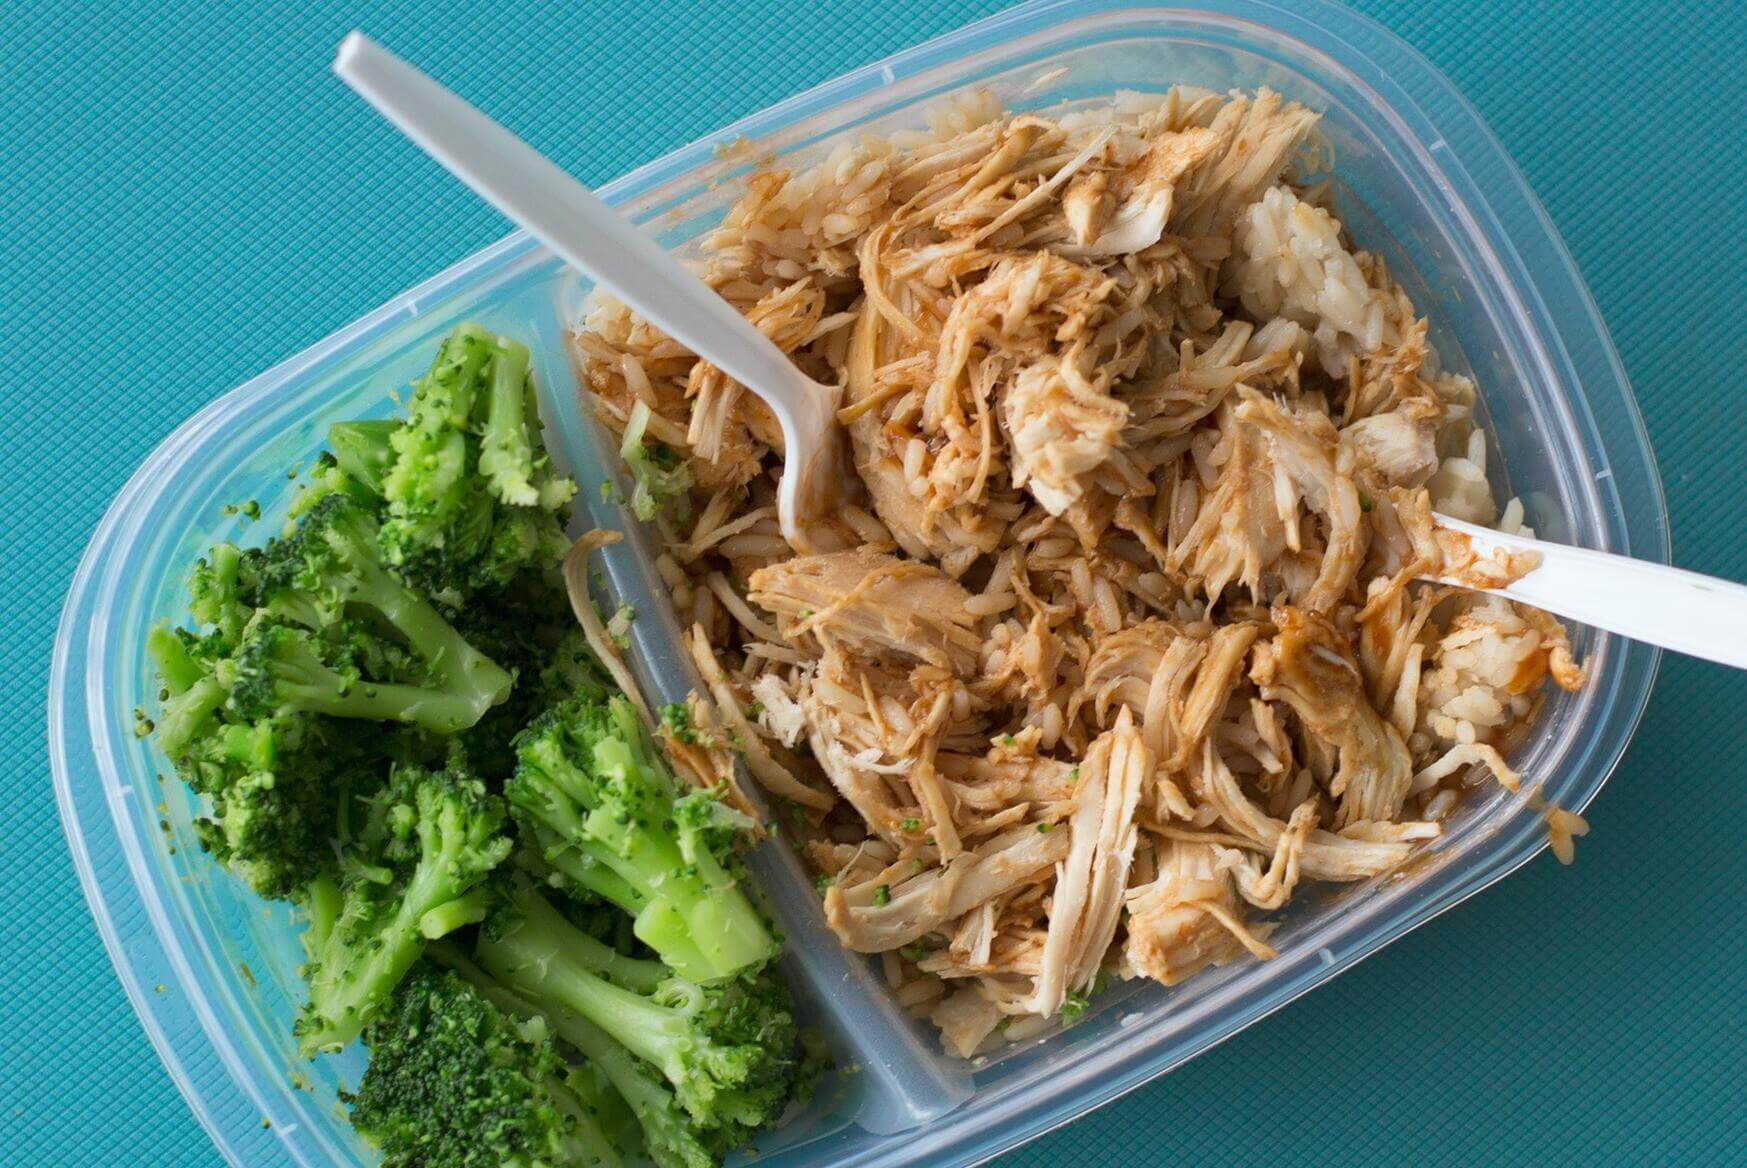 Tupperware With Chicken and Brocolli